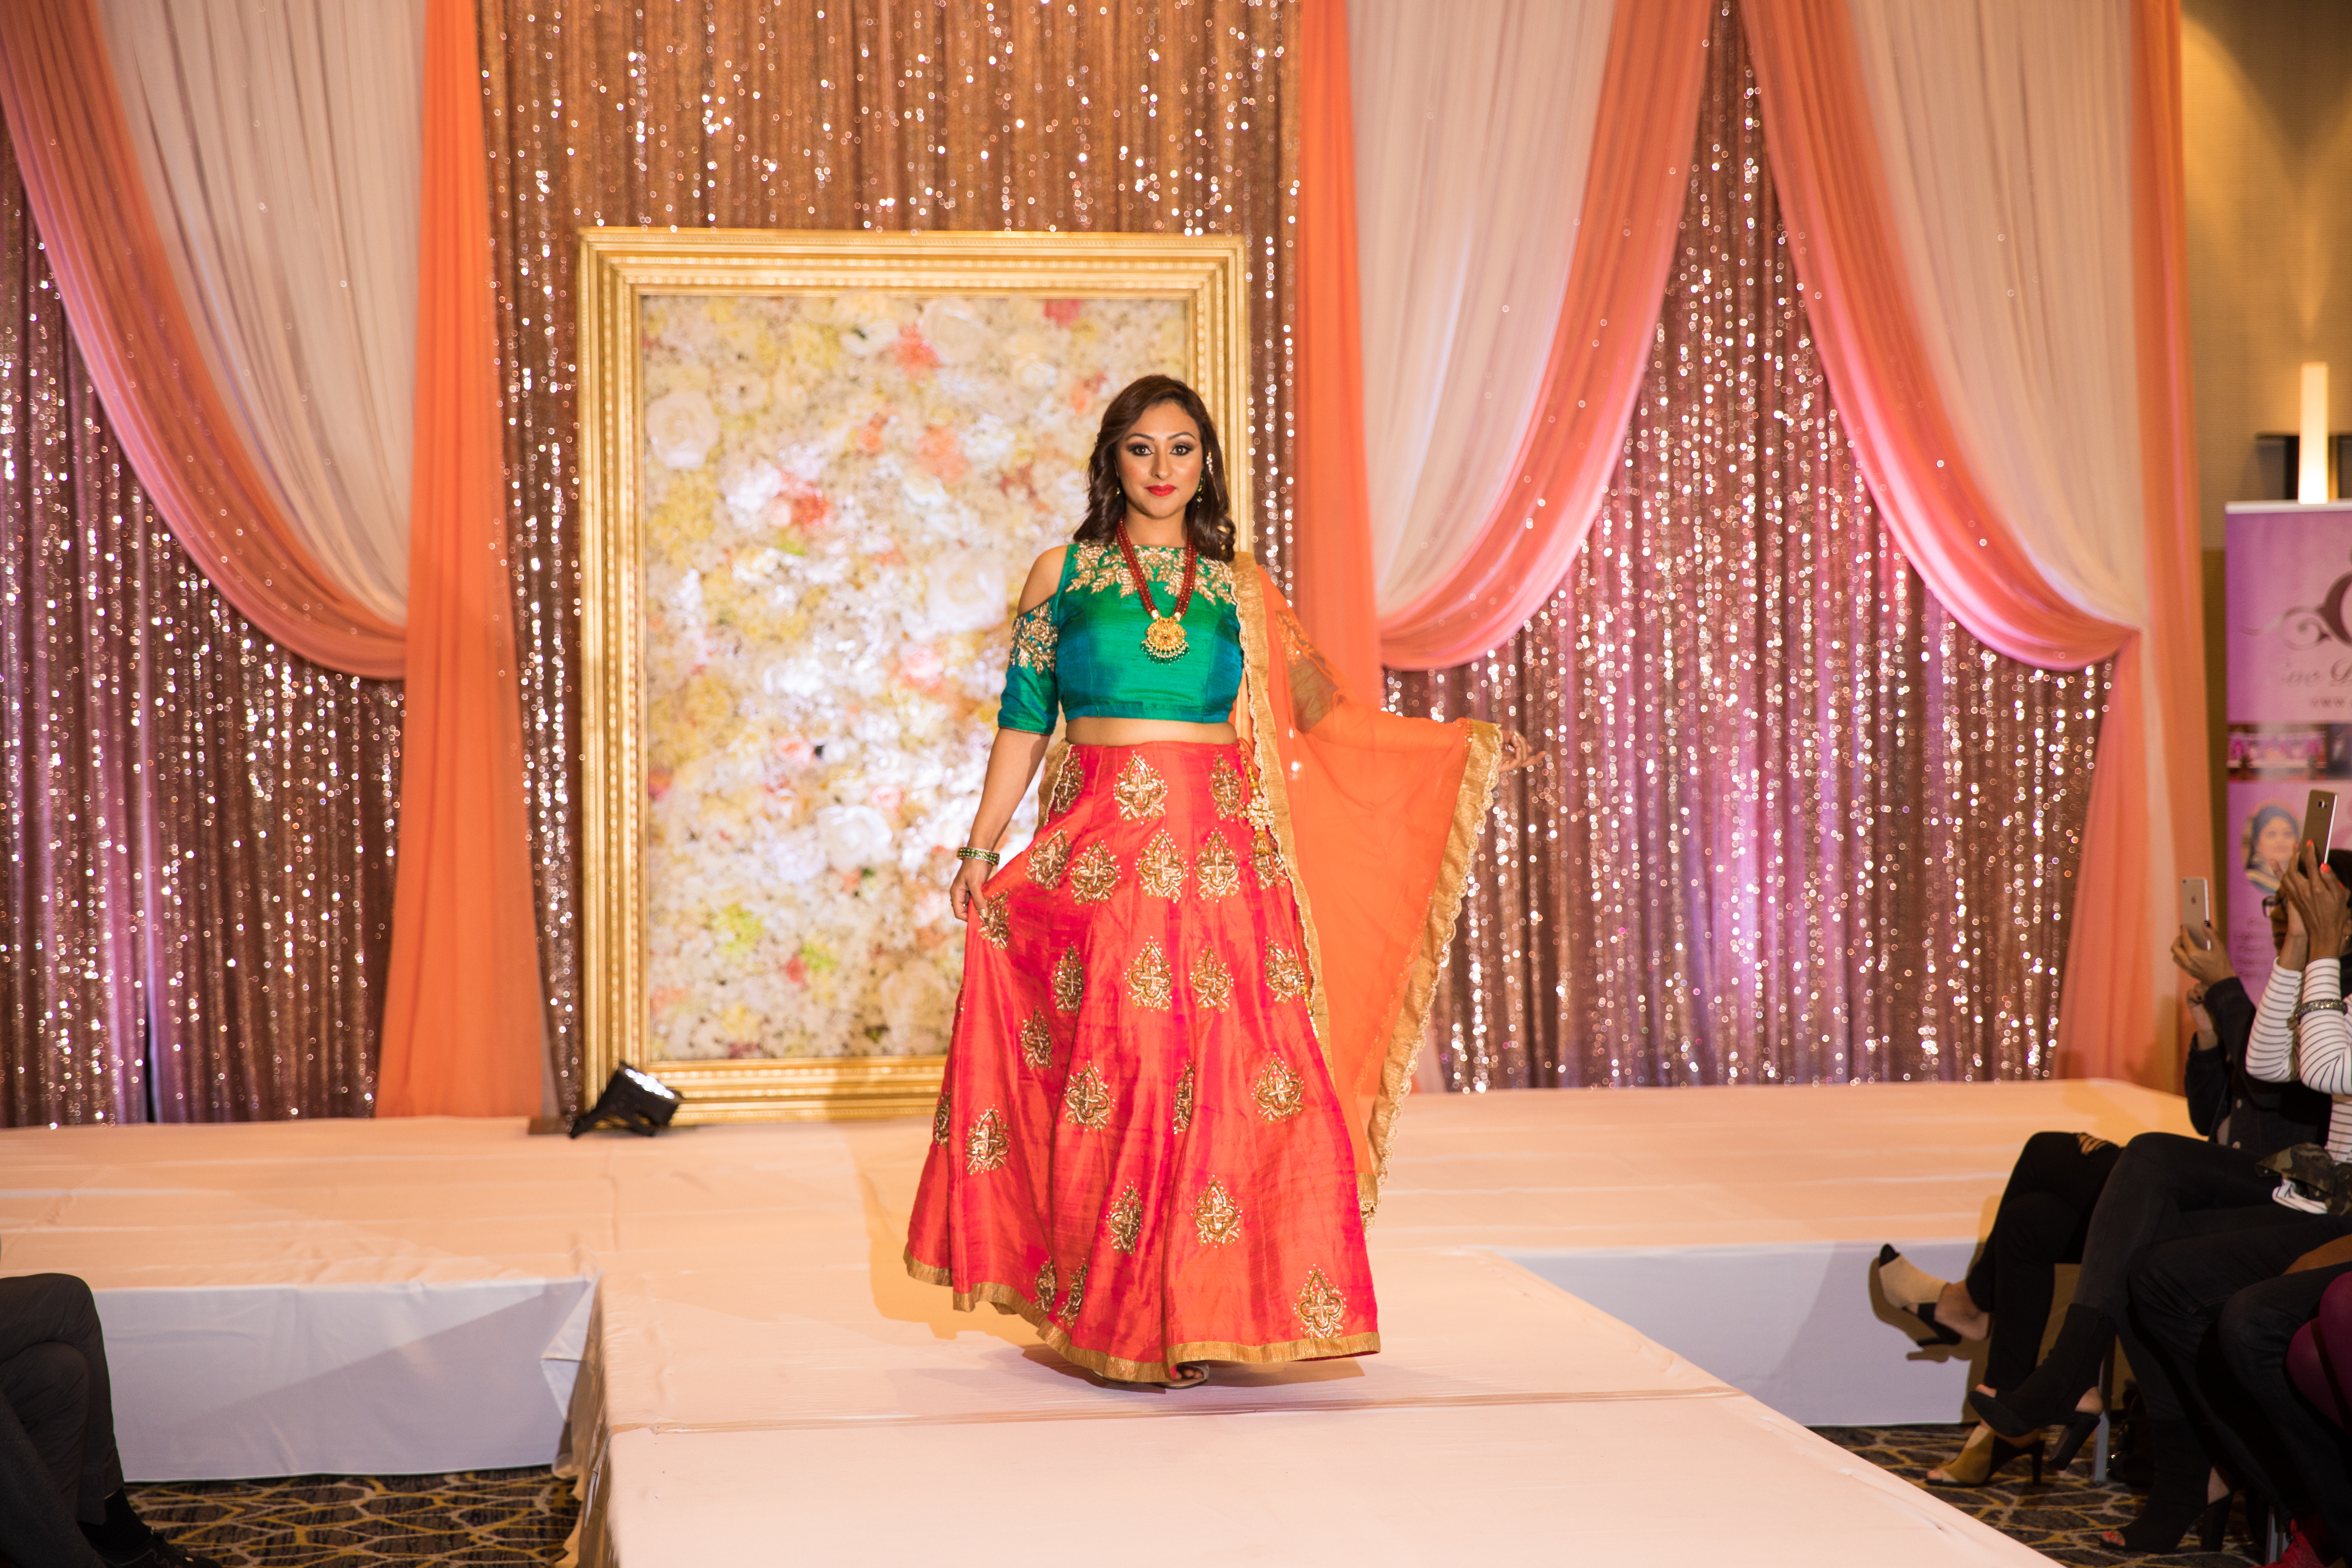 sf-bayarea-indian-wedding-bridal-show-photographer-edcarlogarcia-B35A1901 - Copy